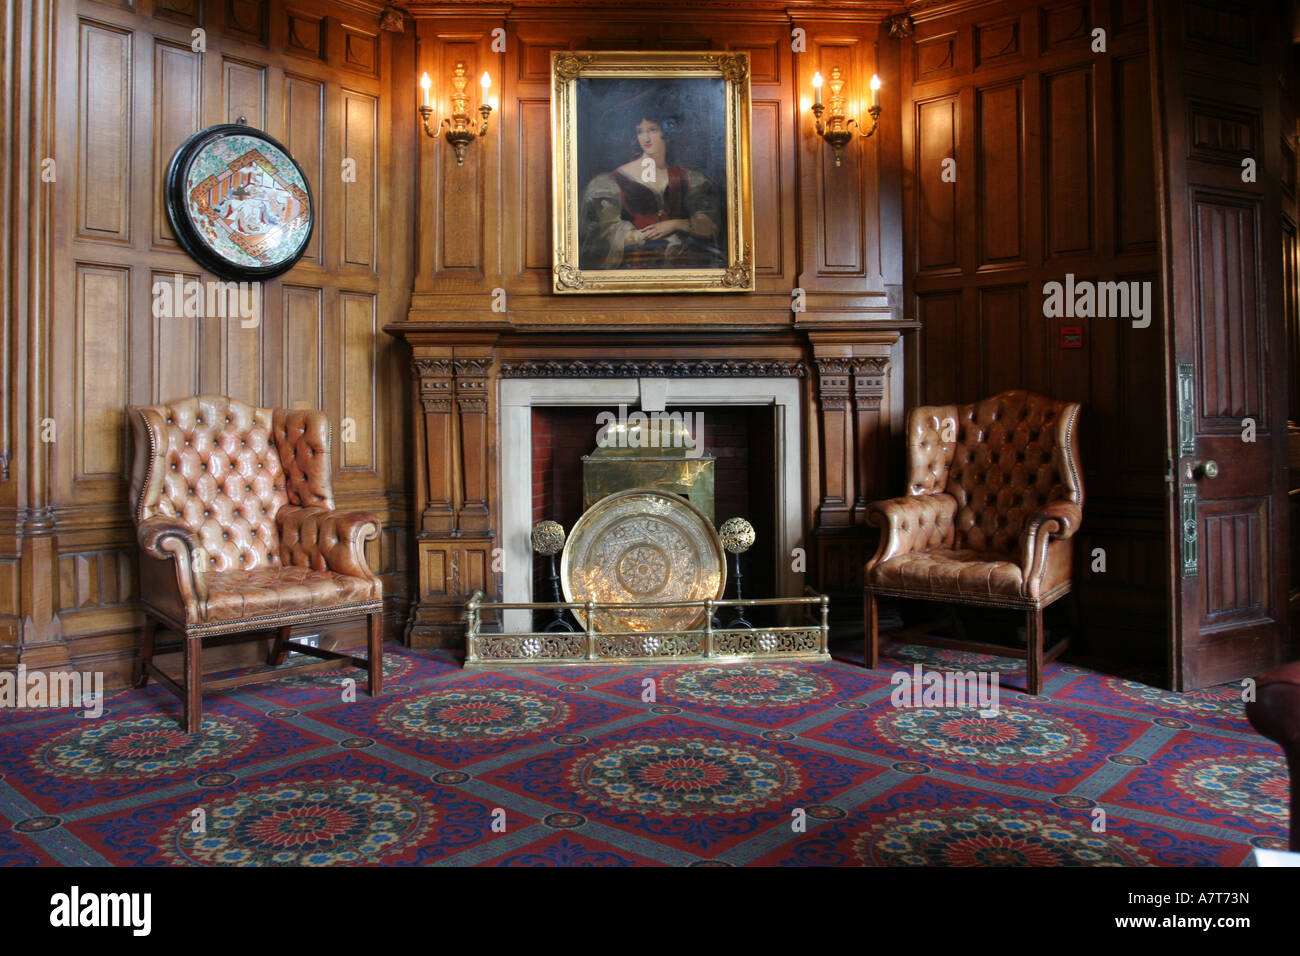 interiors of room, ashford castle, ireland stock photo, royalty